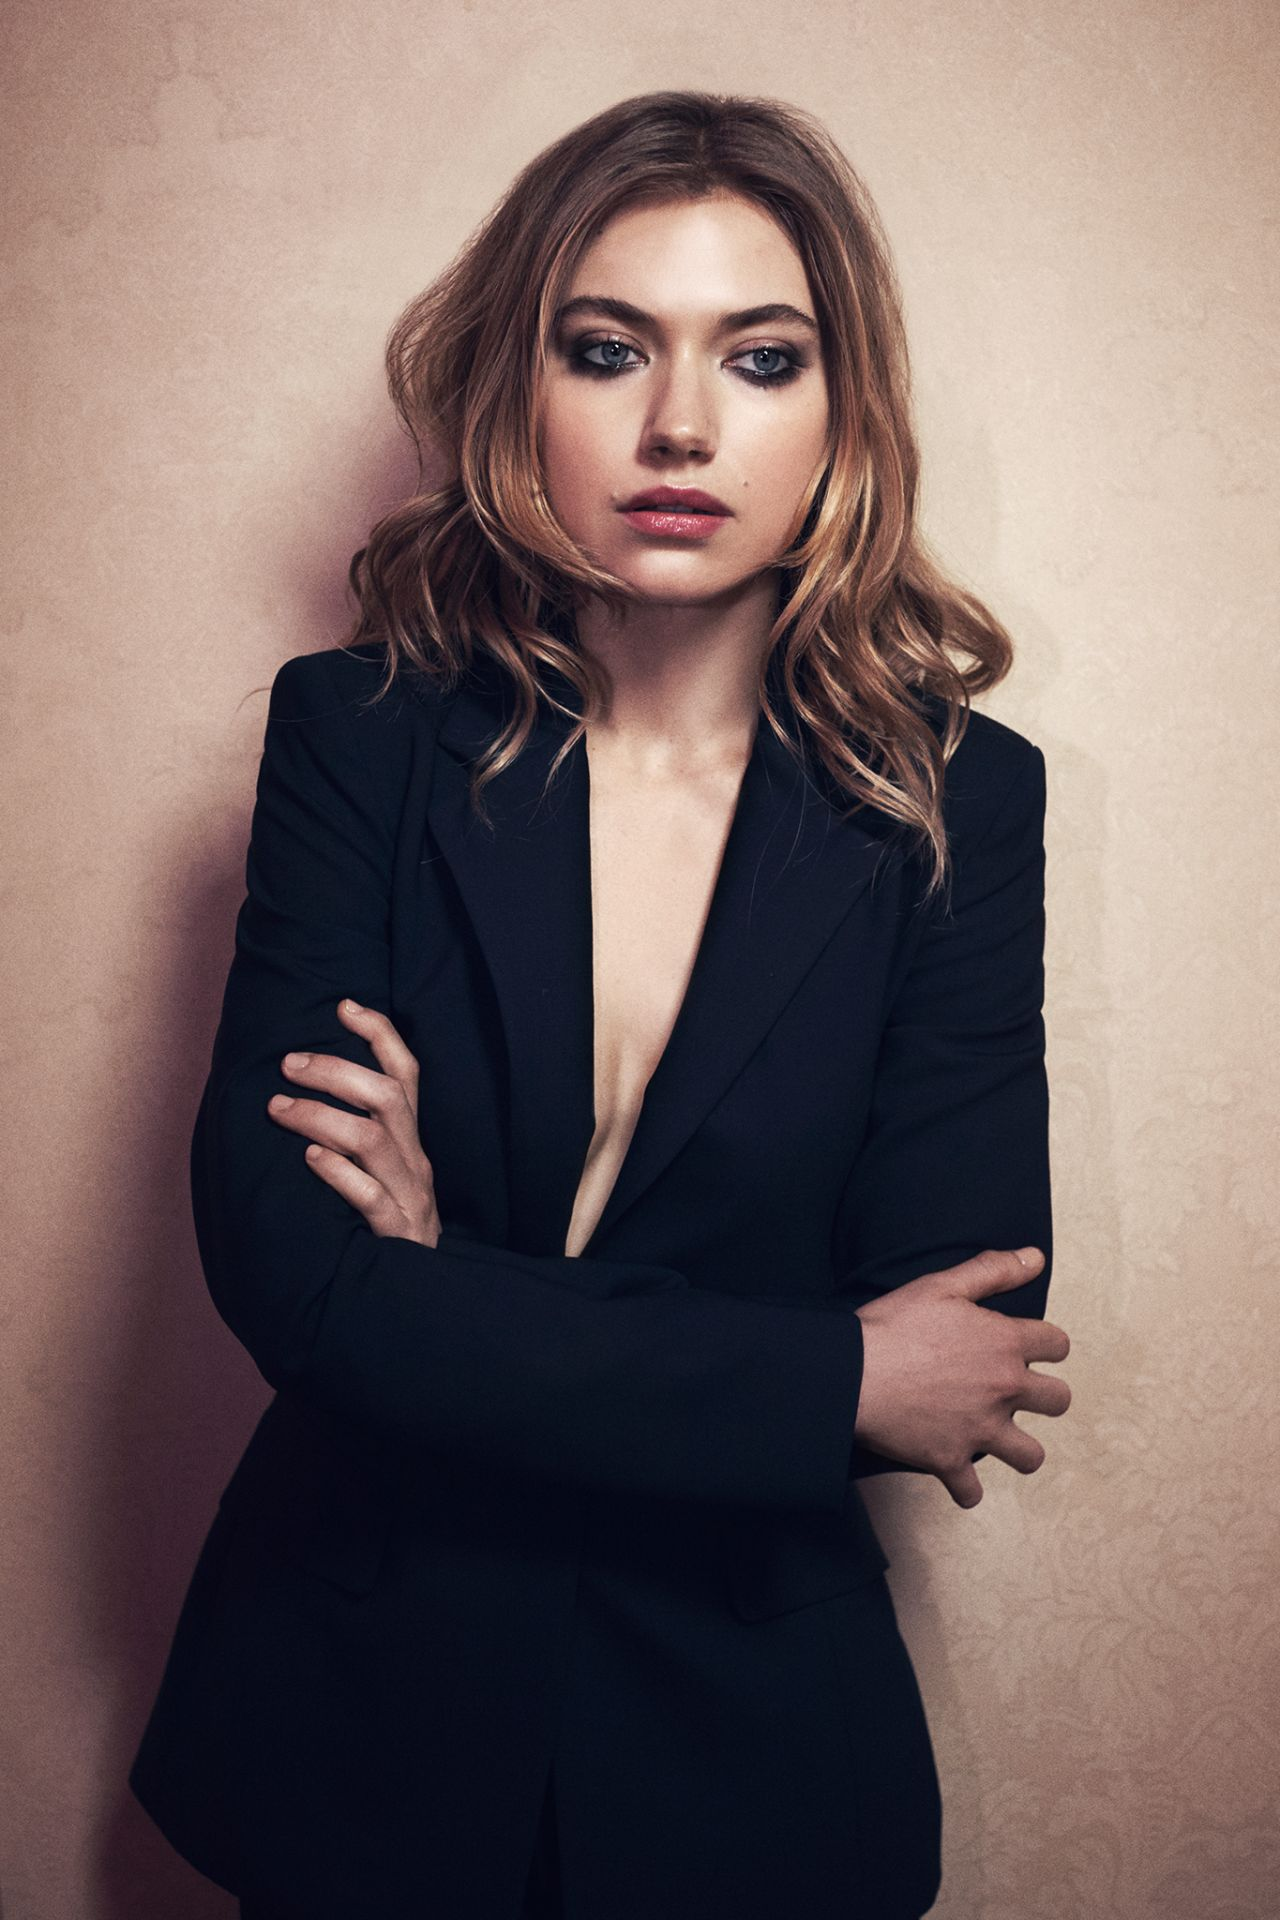 imogen poots photoshootimogen poots instagram, imogen poots gif, imogen poots gif hunt, imogen poots photoshoot, imogen poots vk, imogen poots green room, imogen poots site, imogen poots png, imogen poots listal, imogen poots screencaps, imogen poots фильмография, imogen poots 2017, imogen poots wiki, imogen poots christian bale, imogen poots вк, imogen poots gallery, imogen poots фото, imogen poots interview, imogen poots and zac efron, imogen poots photo gallery